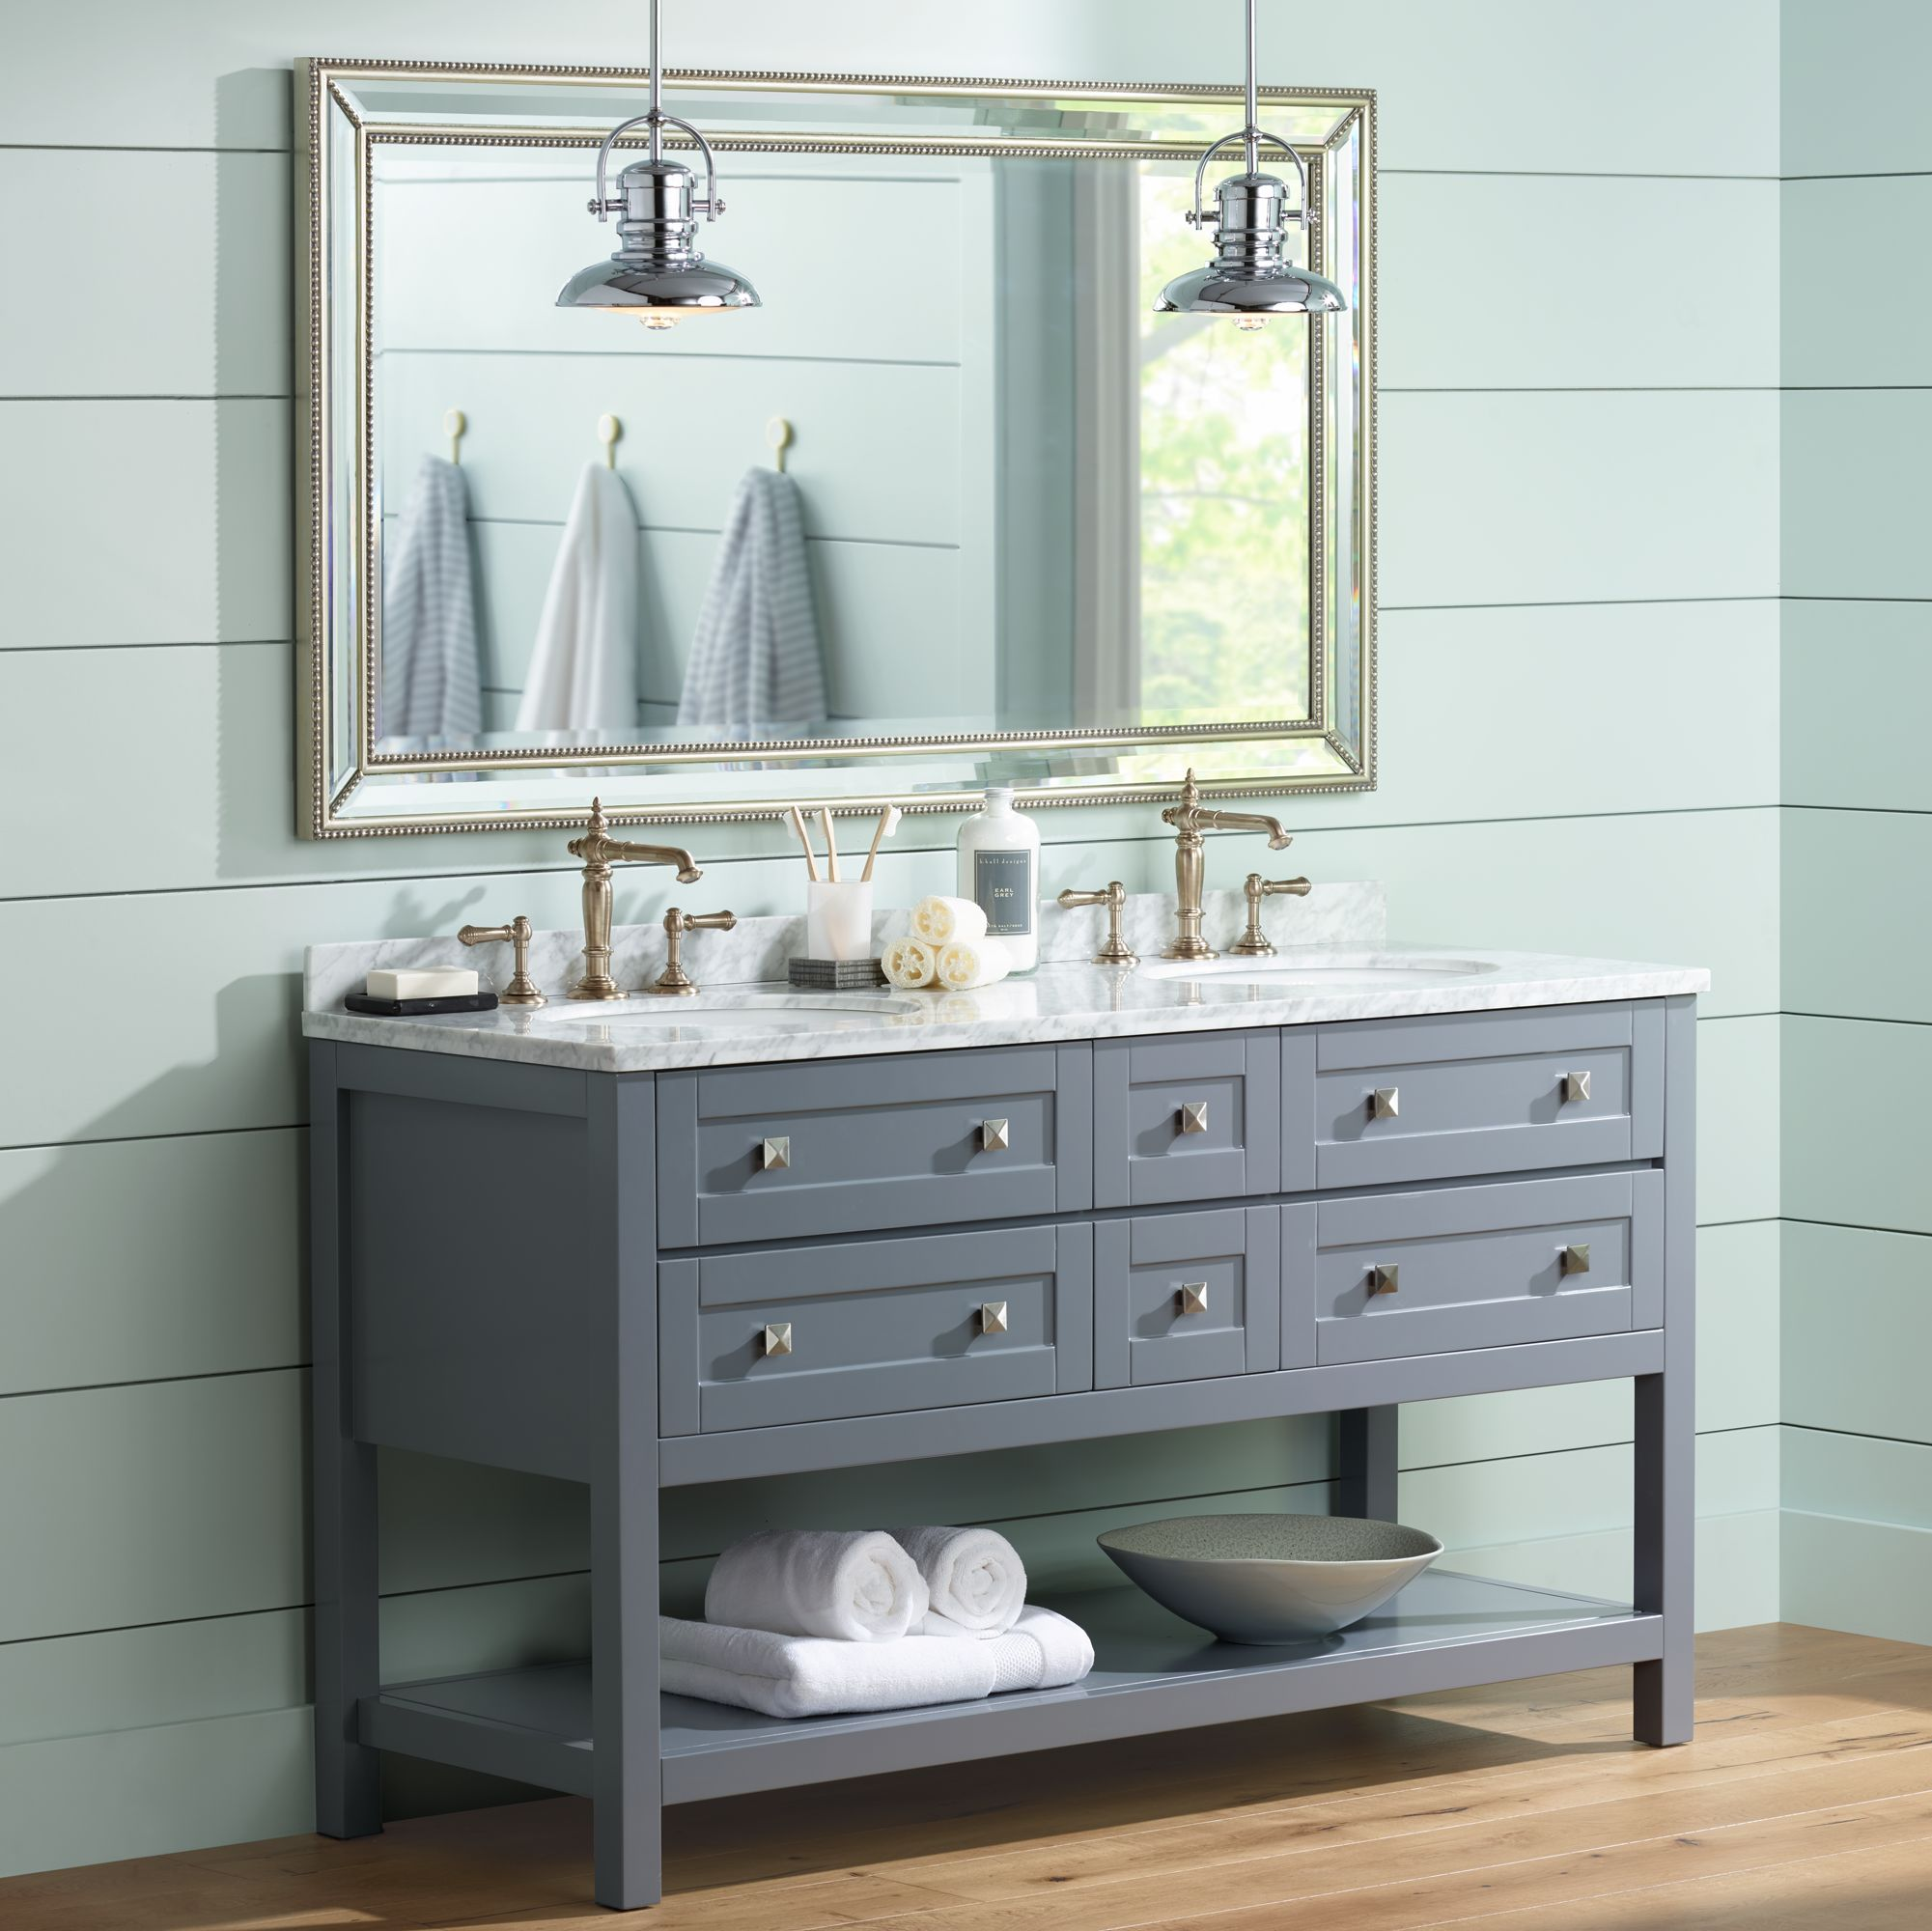 50 Beautiful Photos Of Design Decisions Glamorous Idea Storage Bathroom Vanity Wtsenates Info